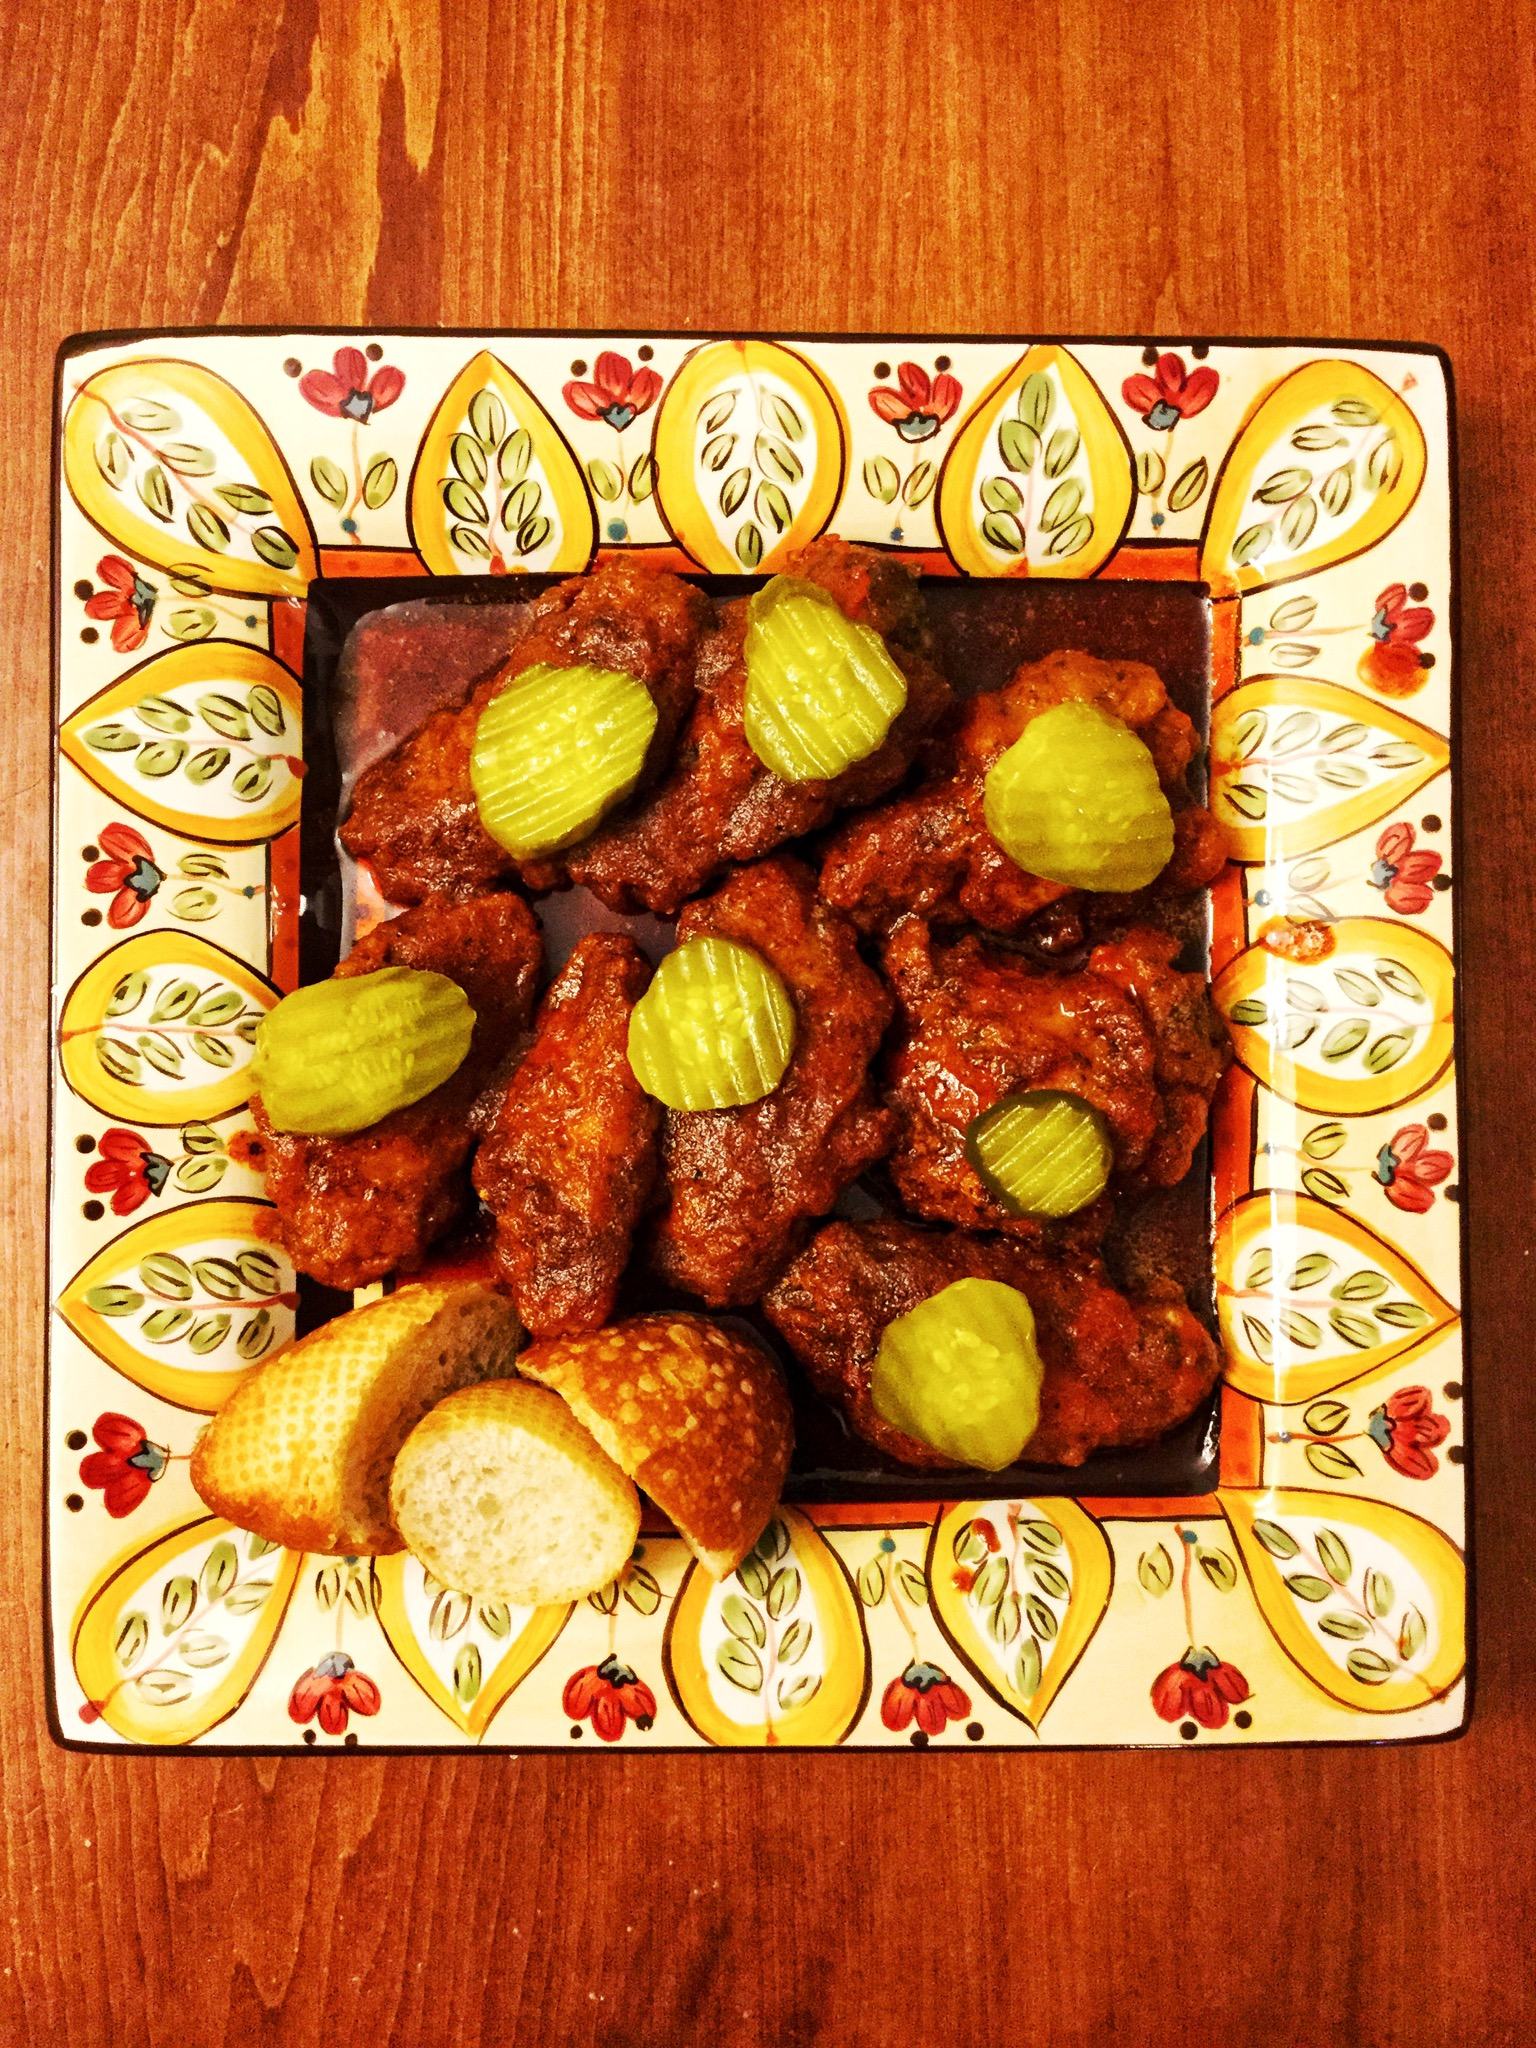 Chef John's Nashville Hot Chicken AI Che?ney